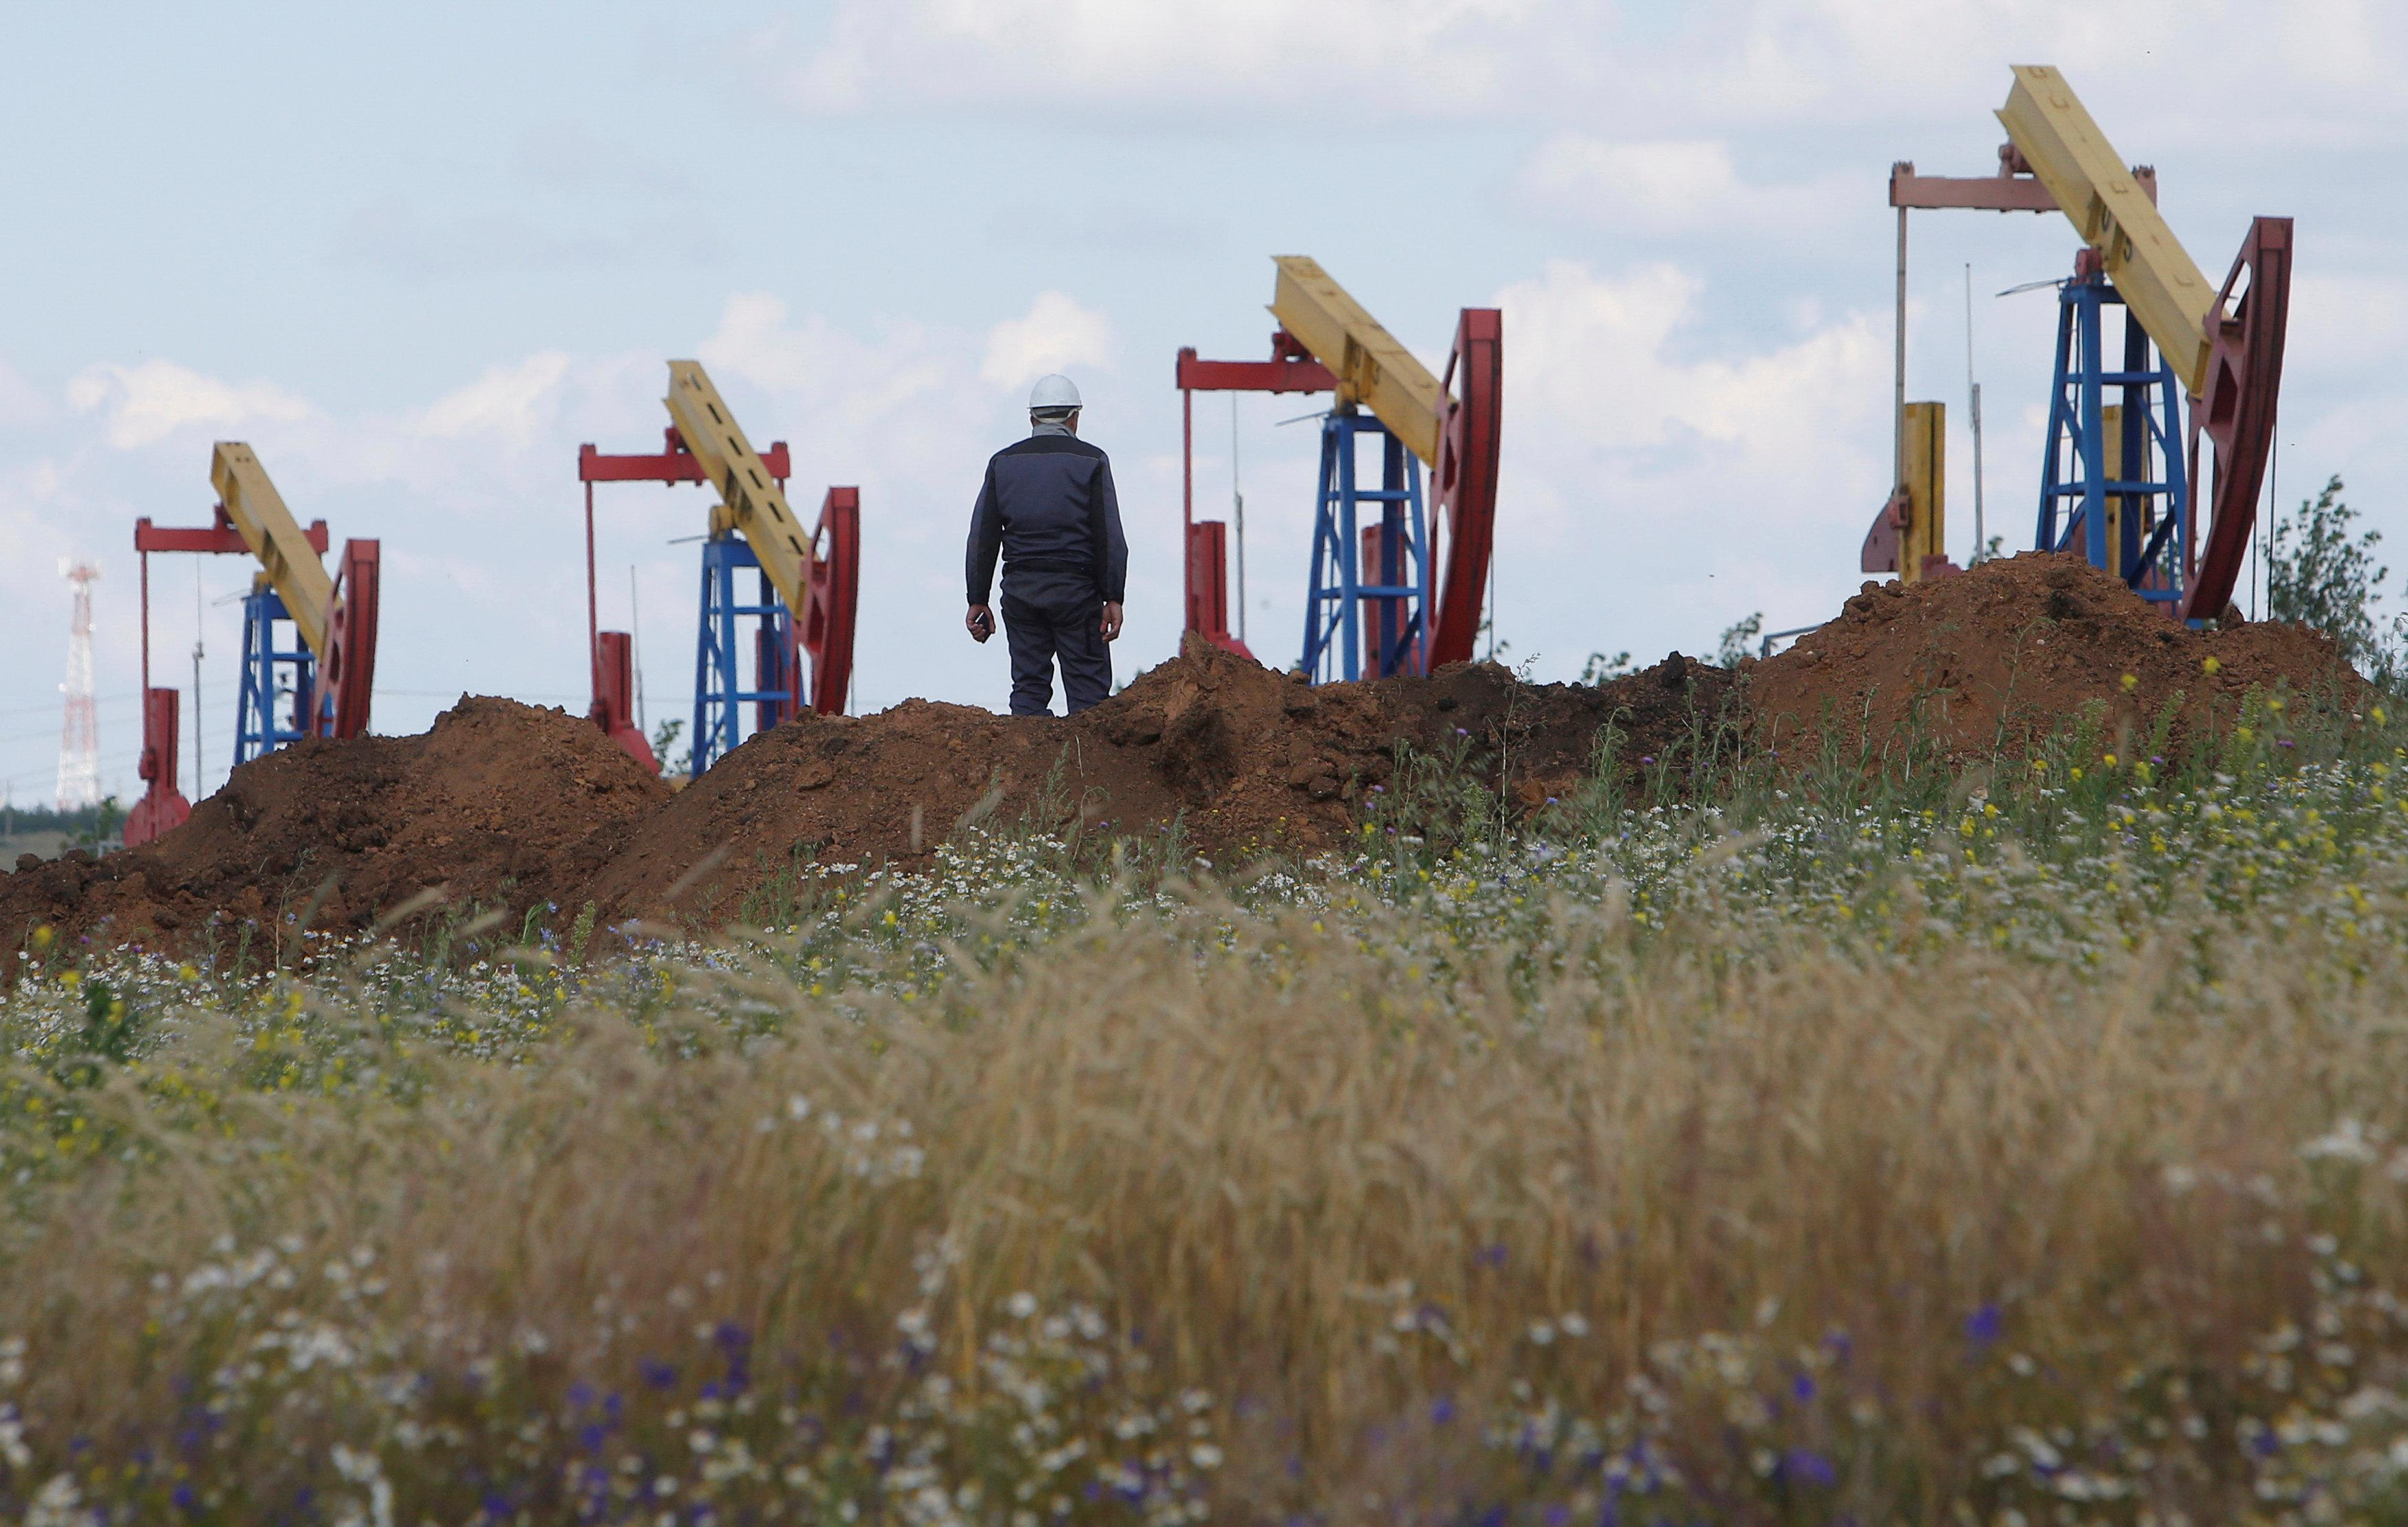 A worker stands in front of pump jacks at the Ashalchinskoye oil field owned by Russia's oil producer Tatneft near Almetyevsk, in the Republic of Tatarstan, Russia July 27, 2017. Sergei Karpukhin